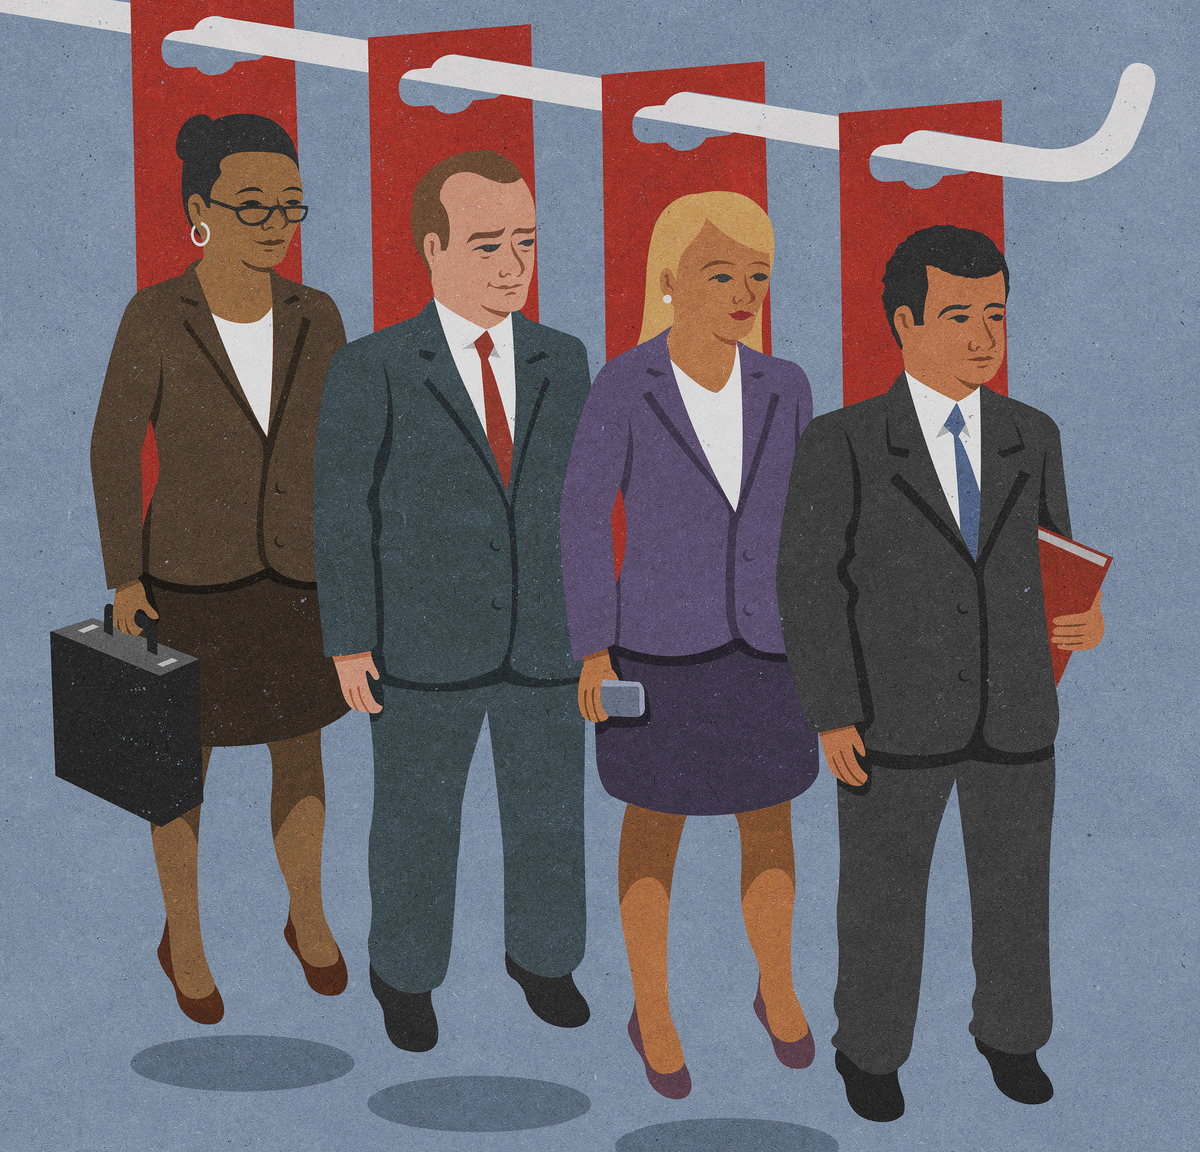 """What happens when """"diversity"""" becomes a corporate buzzword? (John Holcroft/Ikon Images/Getty Images)"""